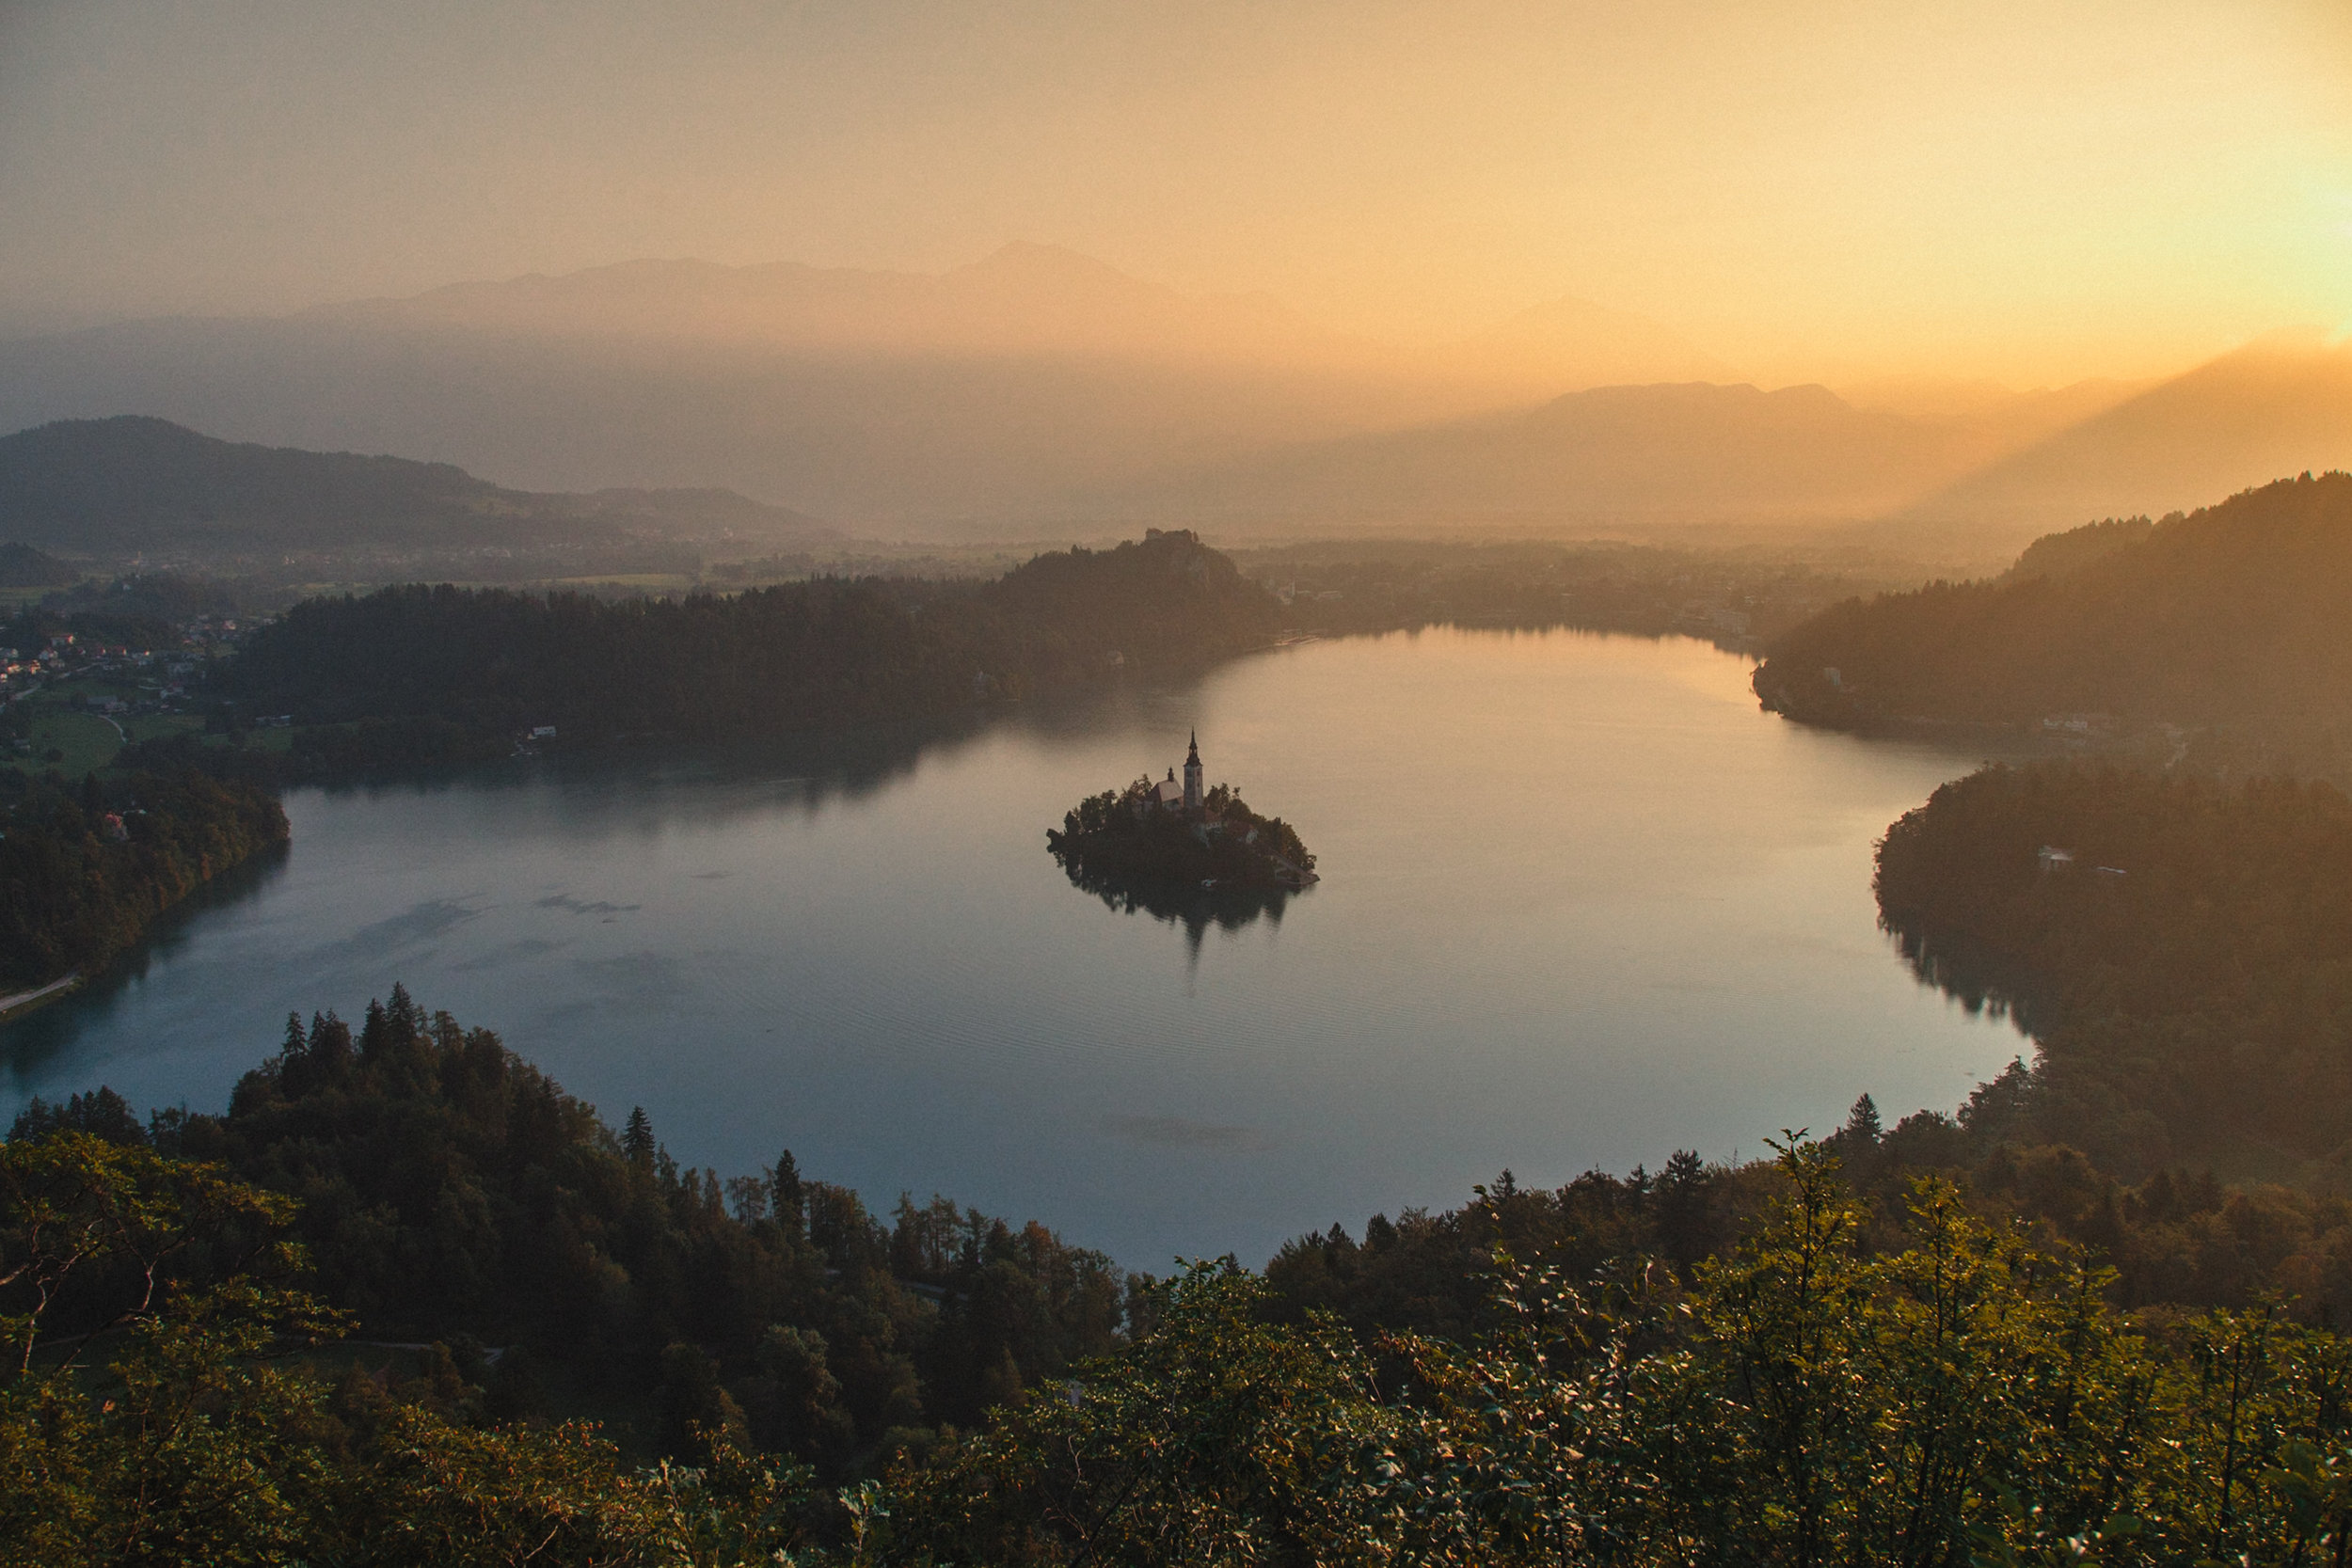 Last Light, Slovenia